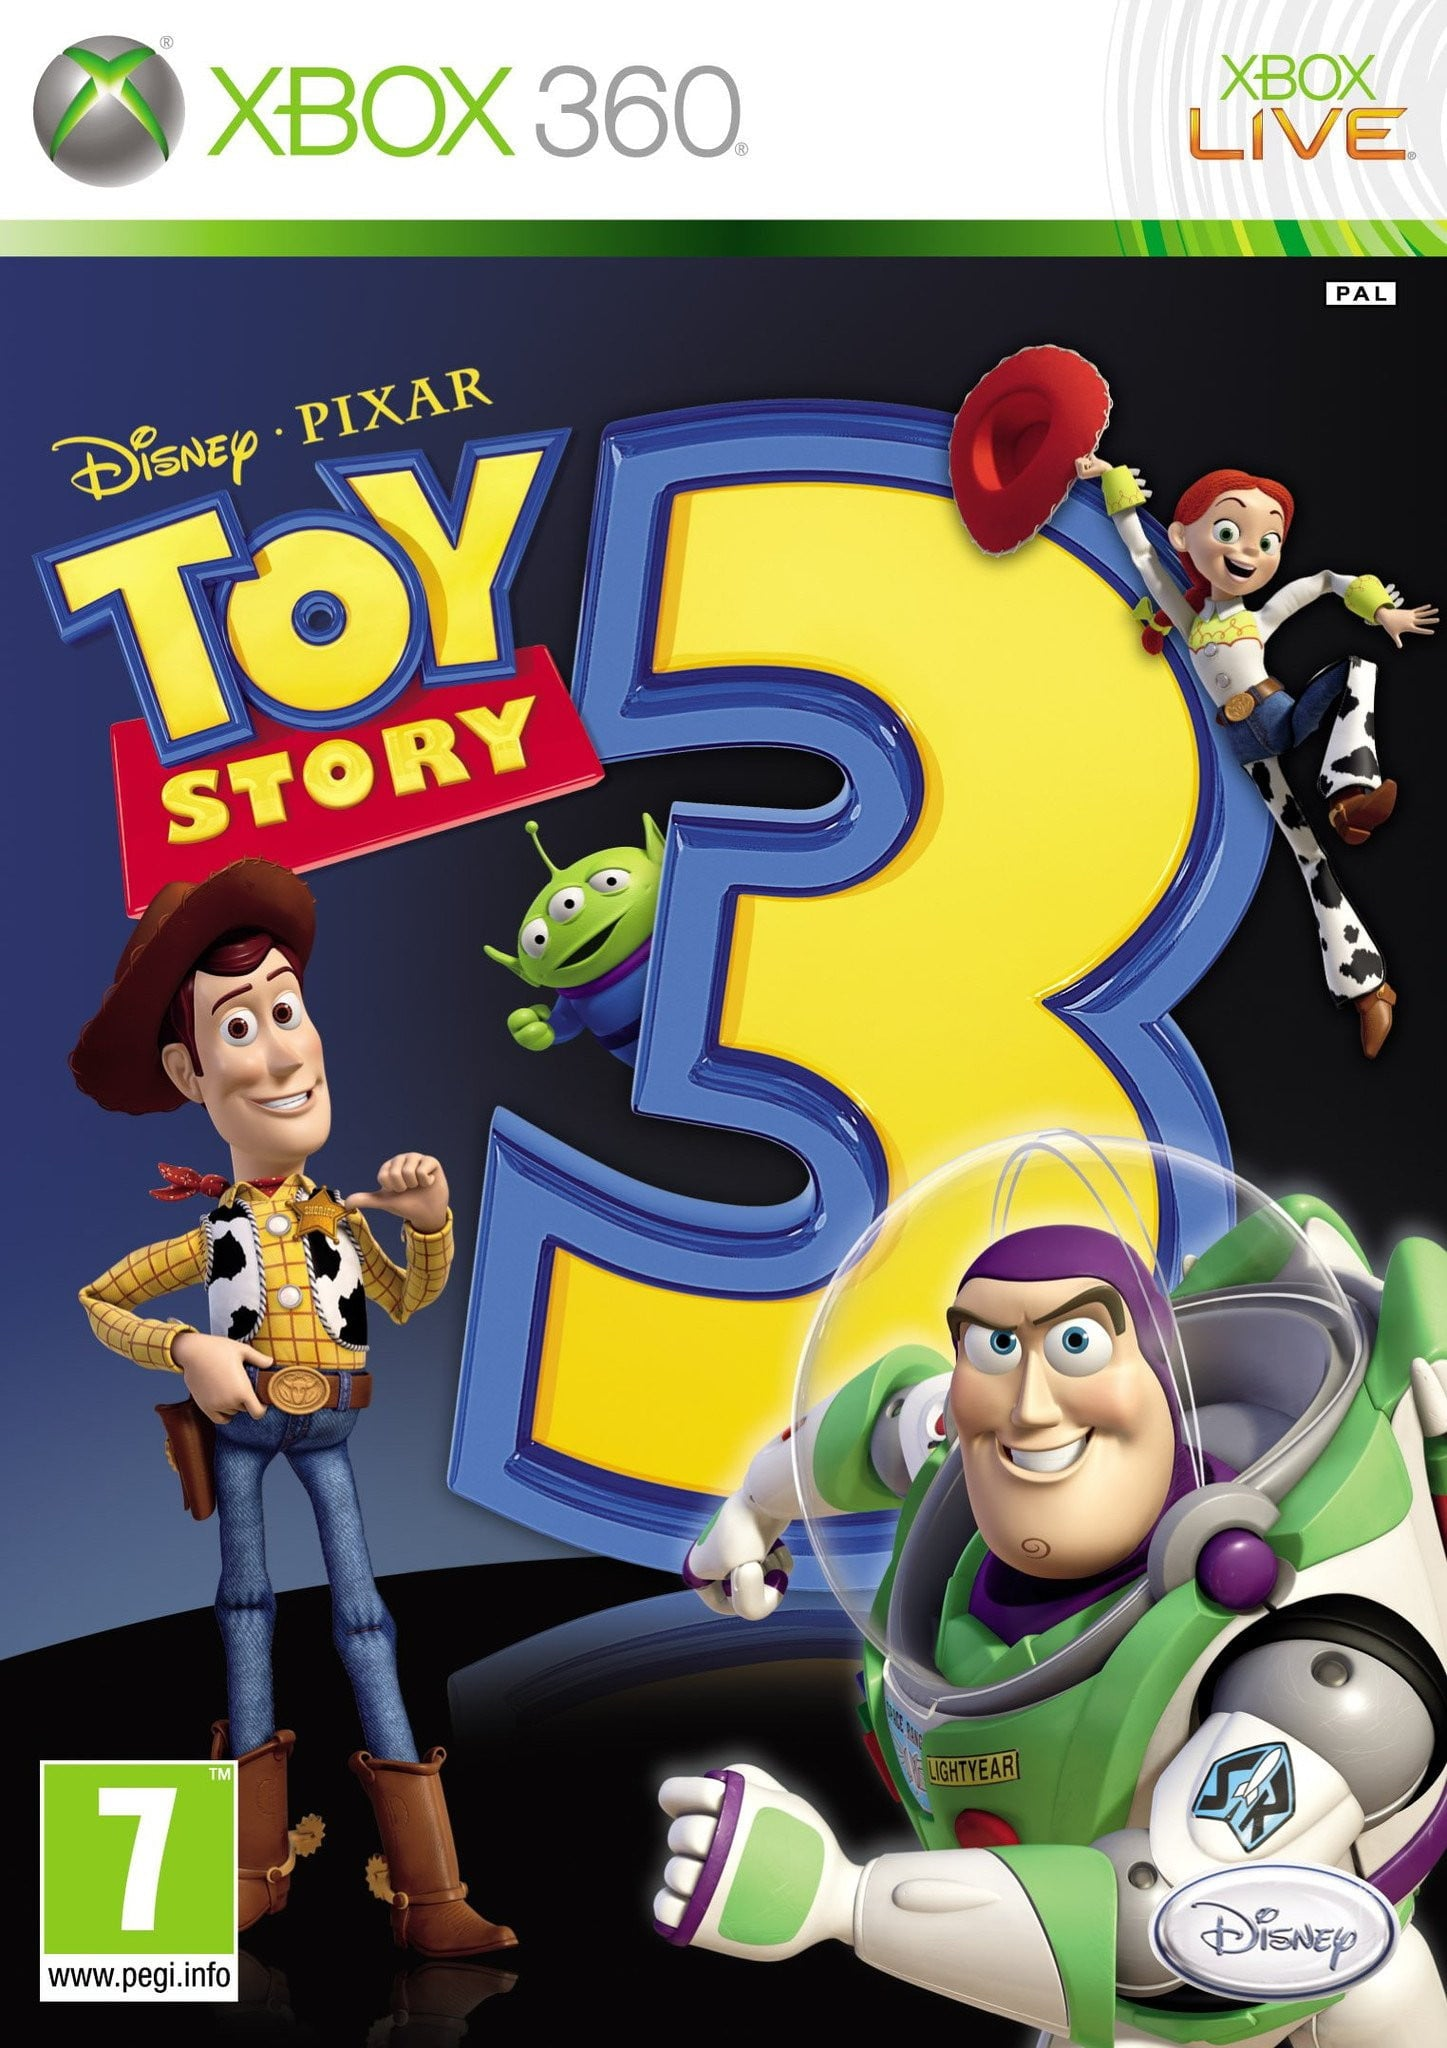 Buy Disney pixar toy story 3 (XBOX 360) XBOX 360 Game in Egypt - Shamy Stores